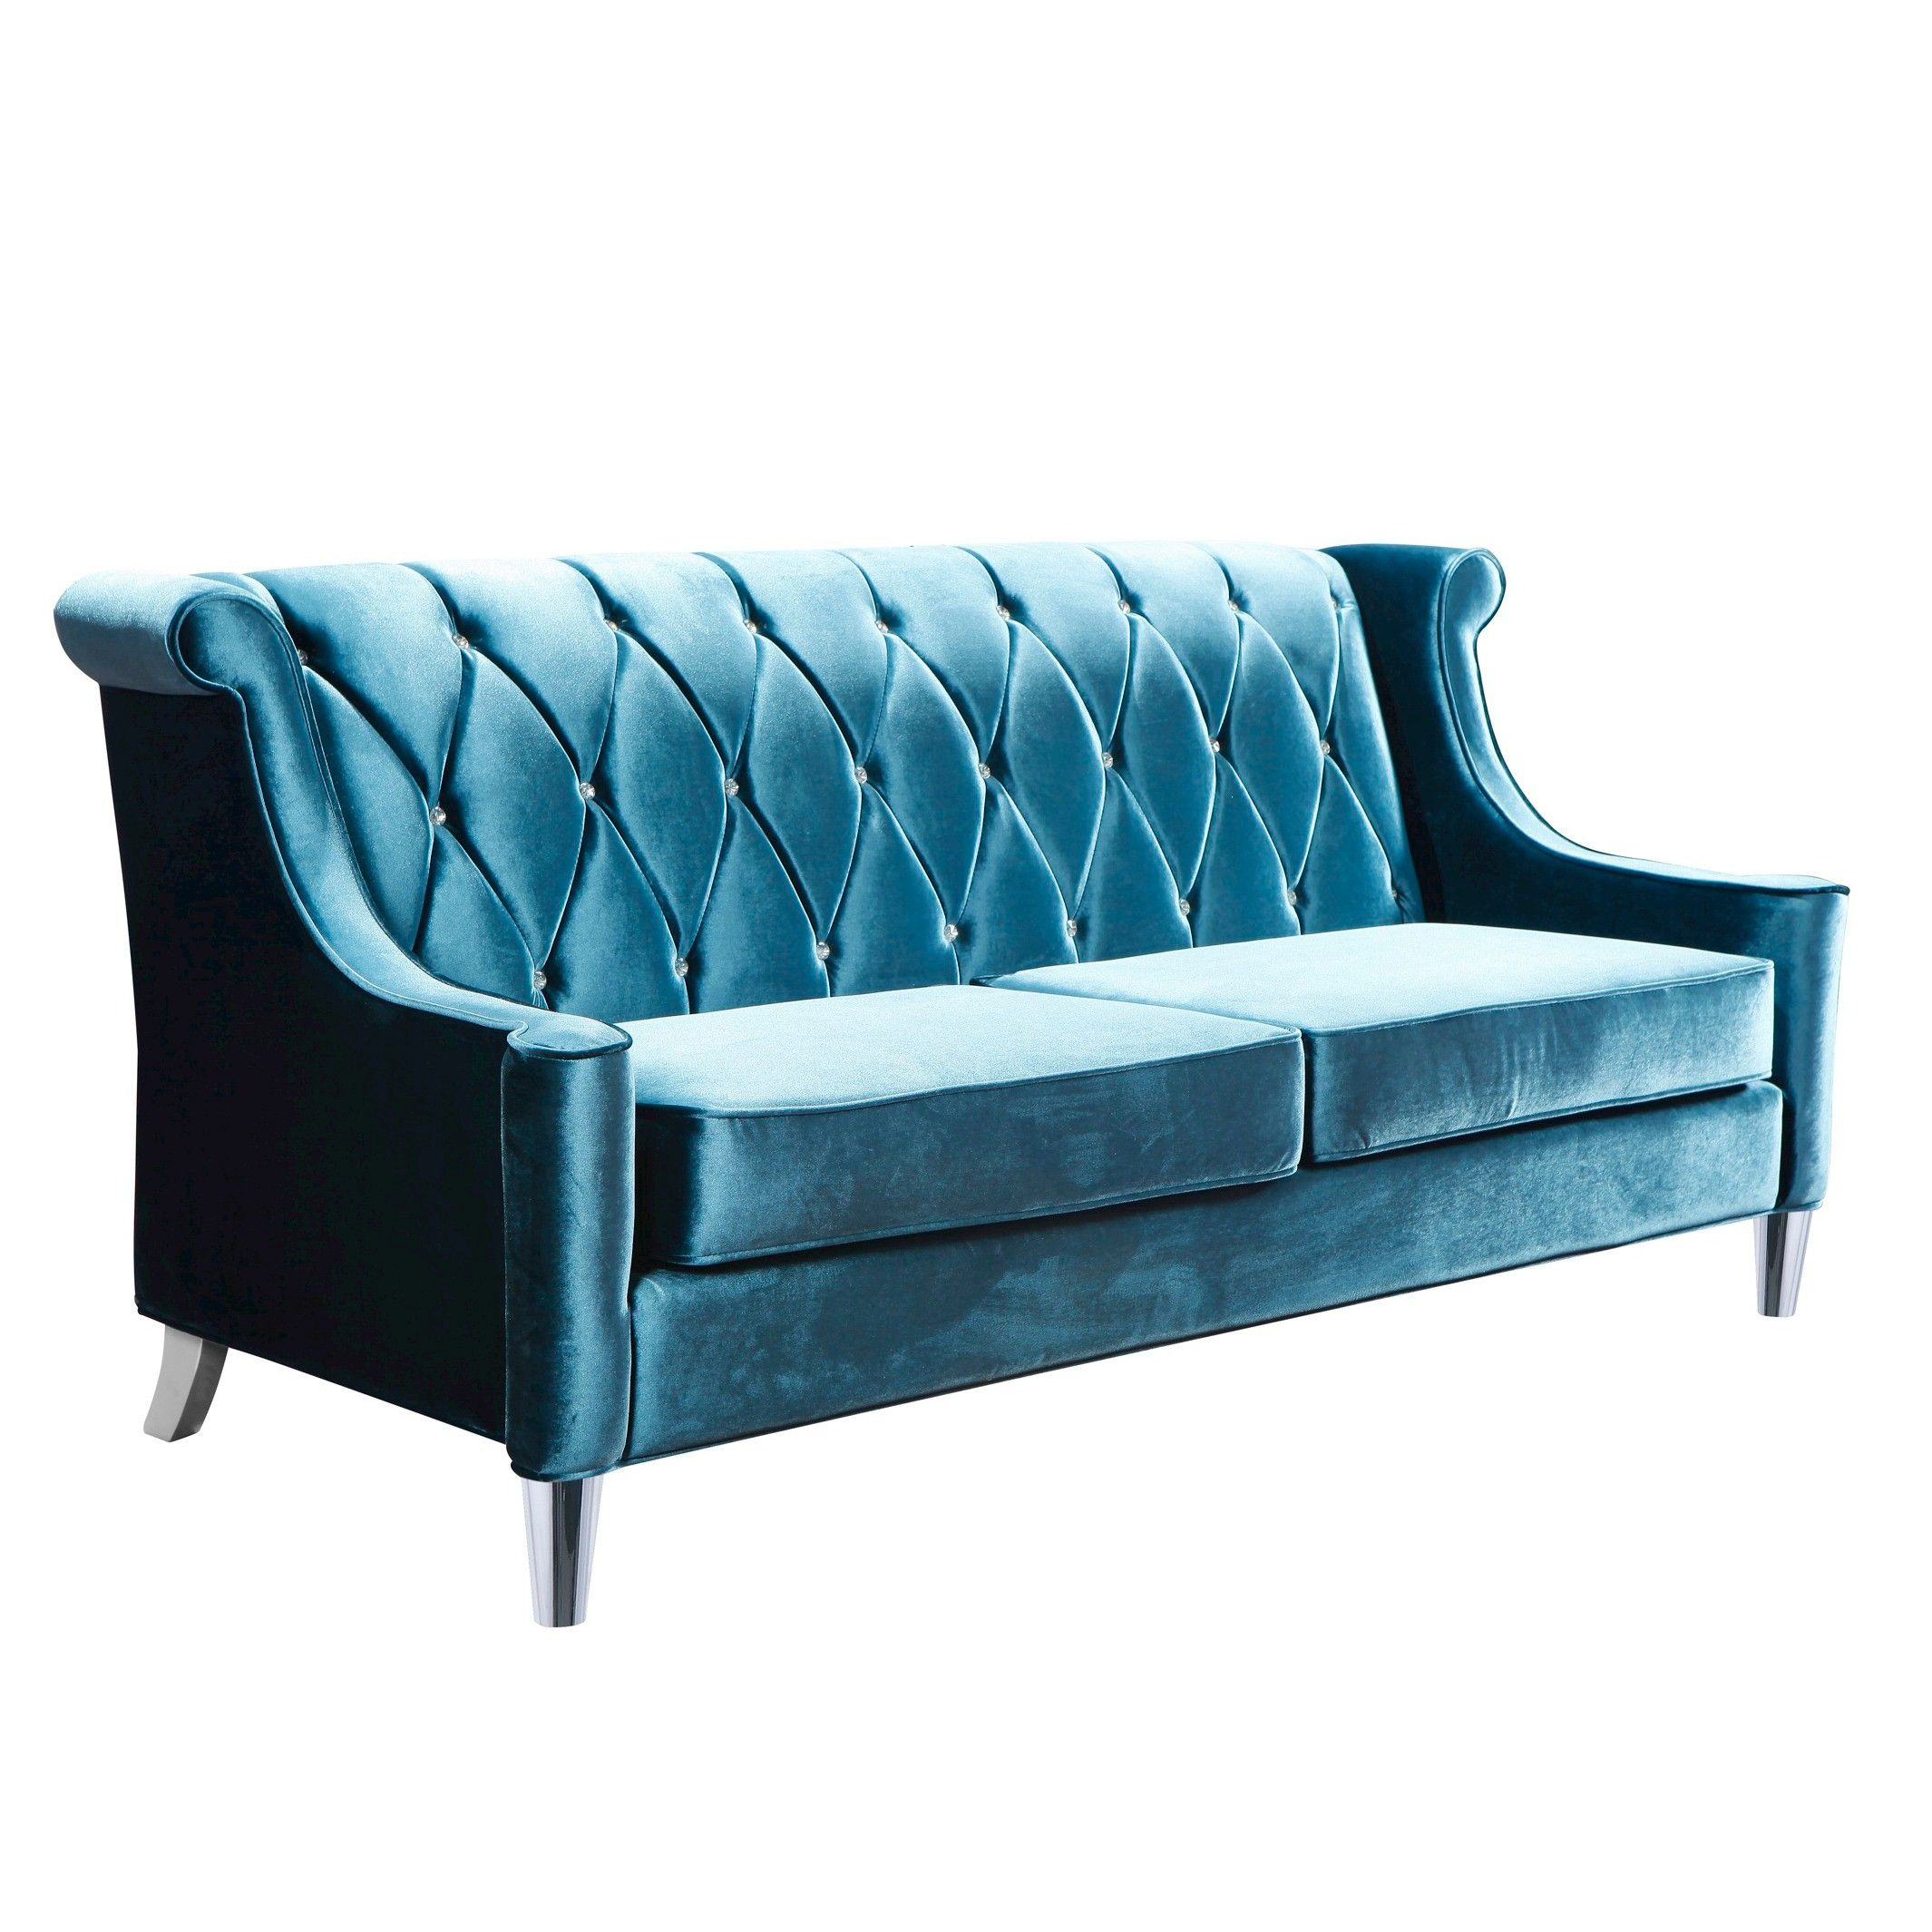 Armen Living Barrister Velvet Sofa - Blue With C... : Target